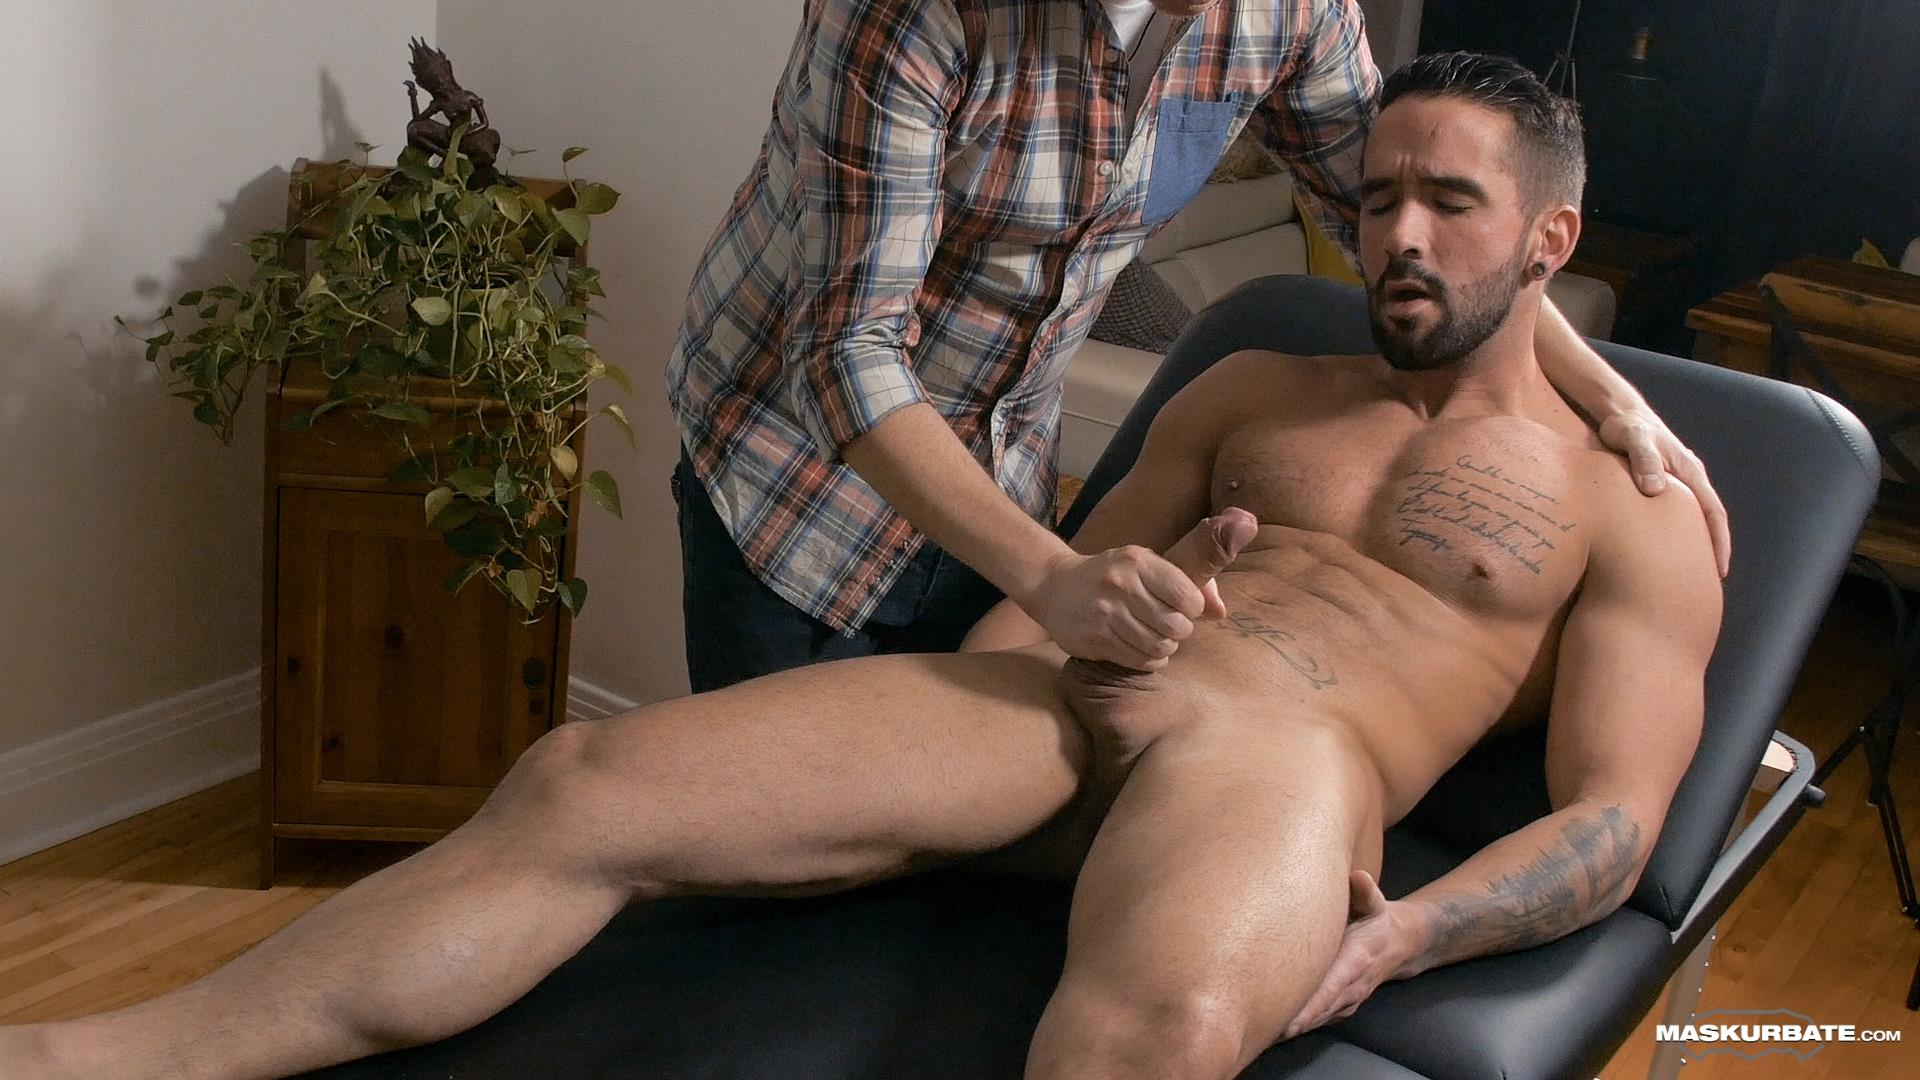 Maskurbate-Zack-Lemec-Gay-Massage-With-Happy-Ending-09 Zack Lemec Get's His First Gay Massage With A Happy Ending